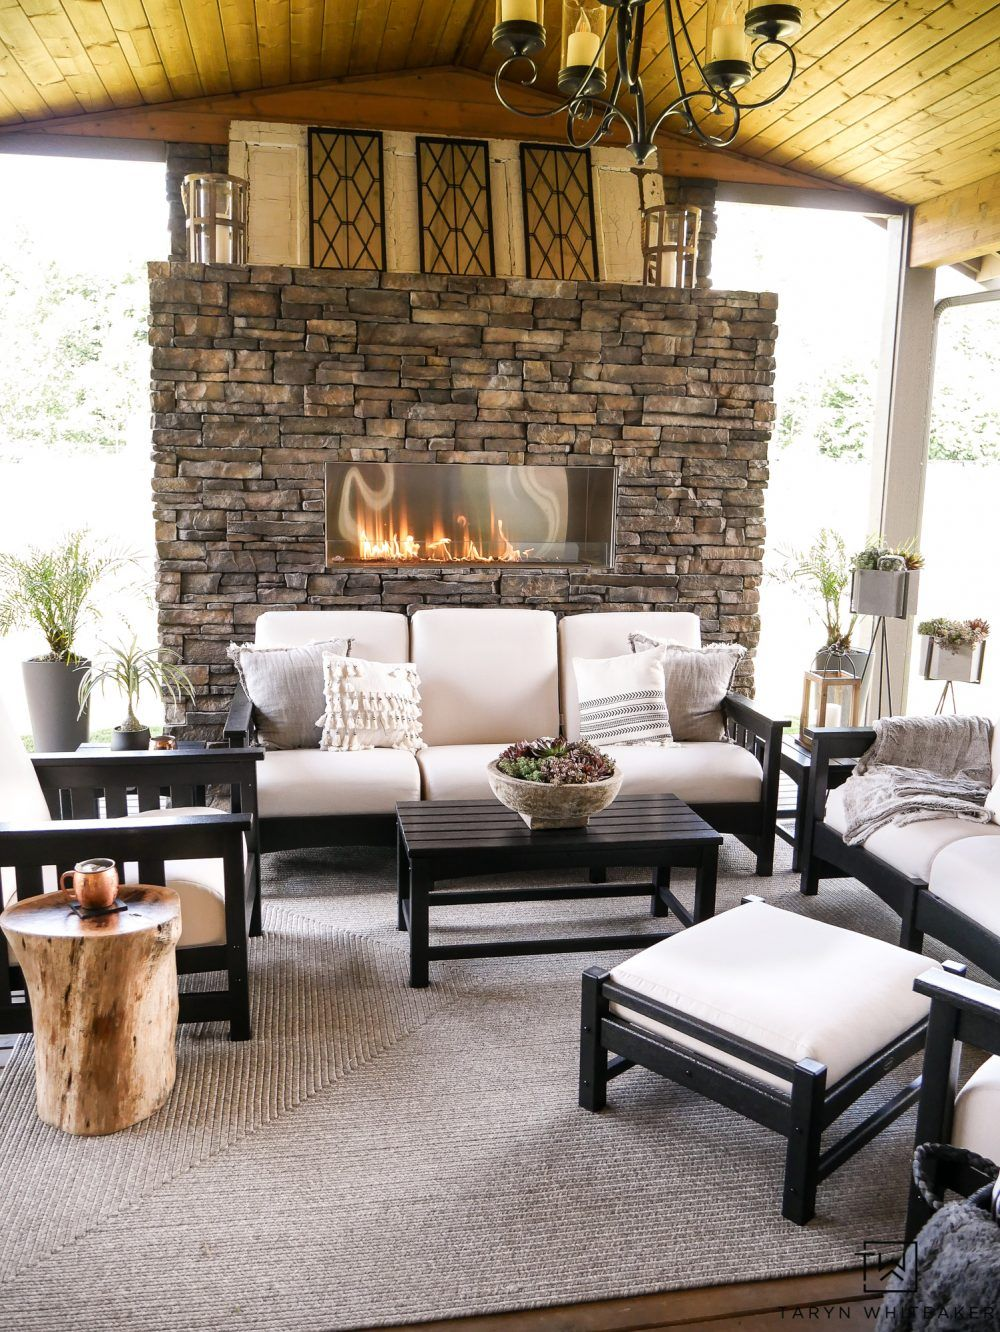 This Gorgeous Black And White Outdoor Furniture Makes E Feel So Luxurious The Neutral Tones With Stone Fireplace Create A Soft Cozy Living